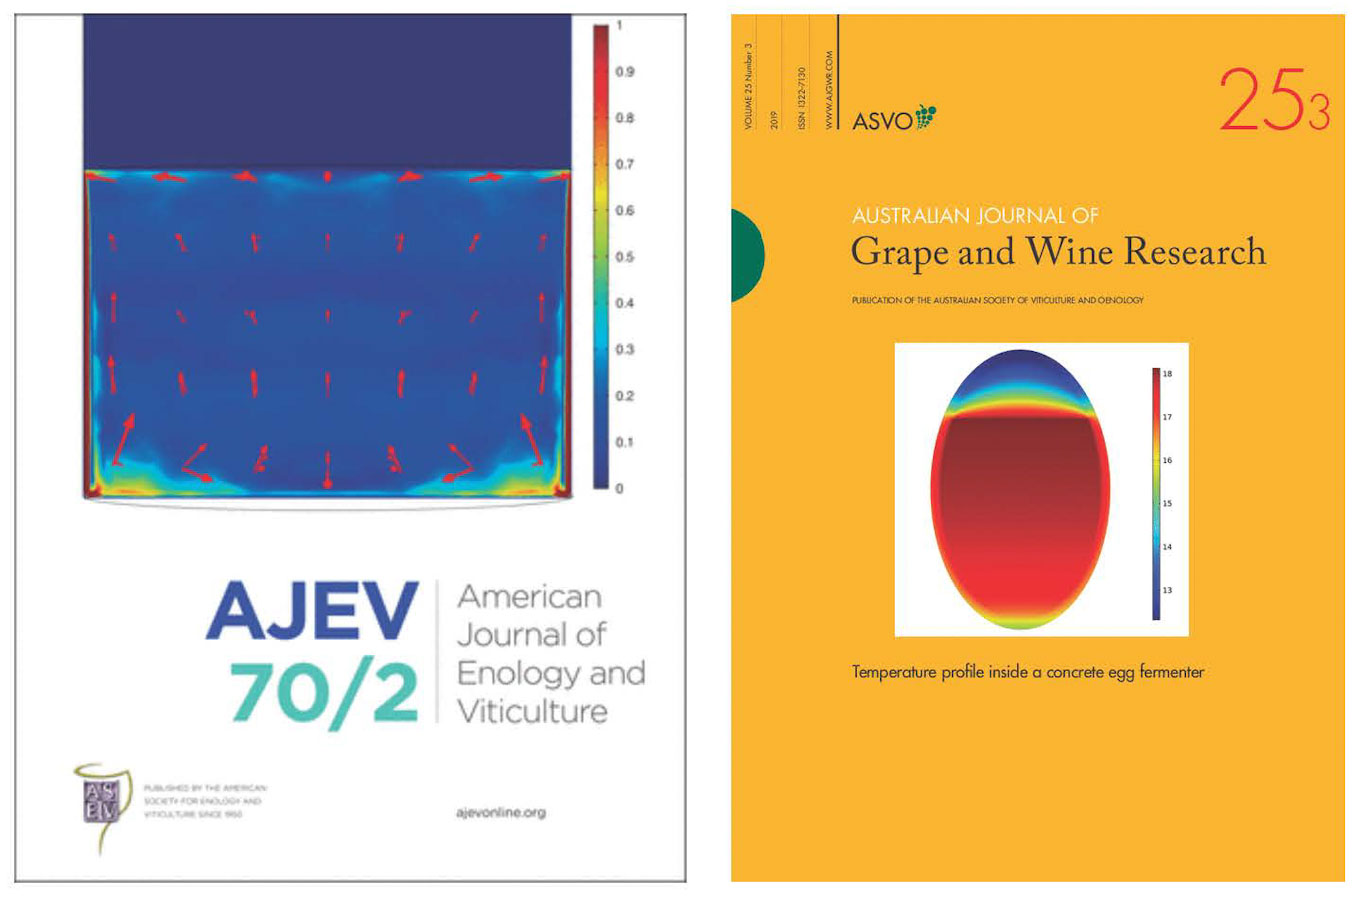 journal covers with Dr. Block's research focused